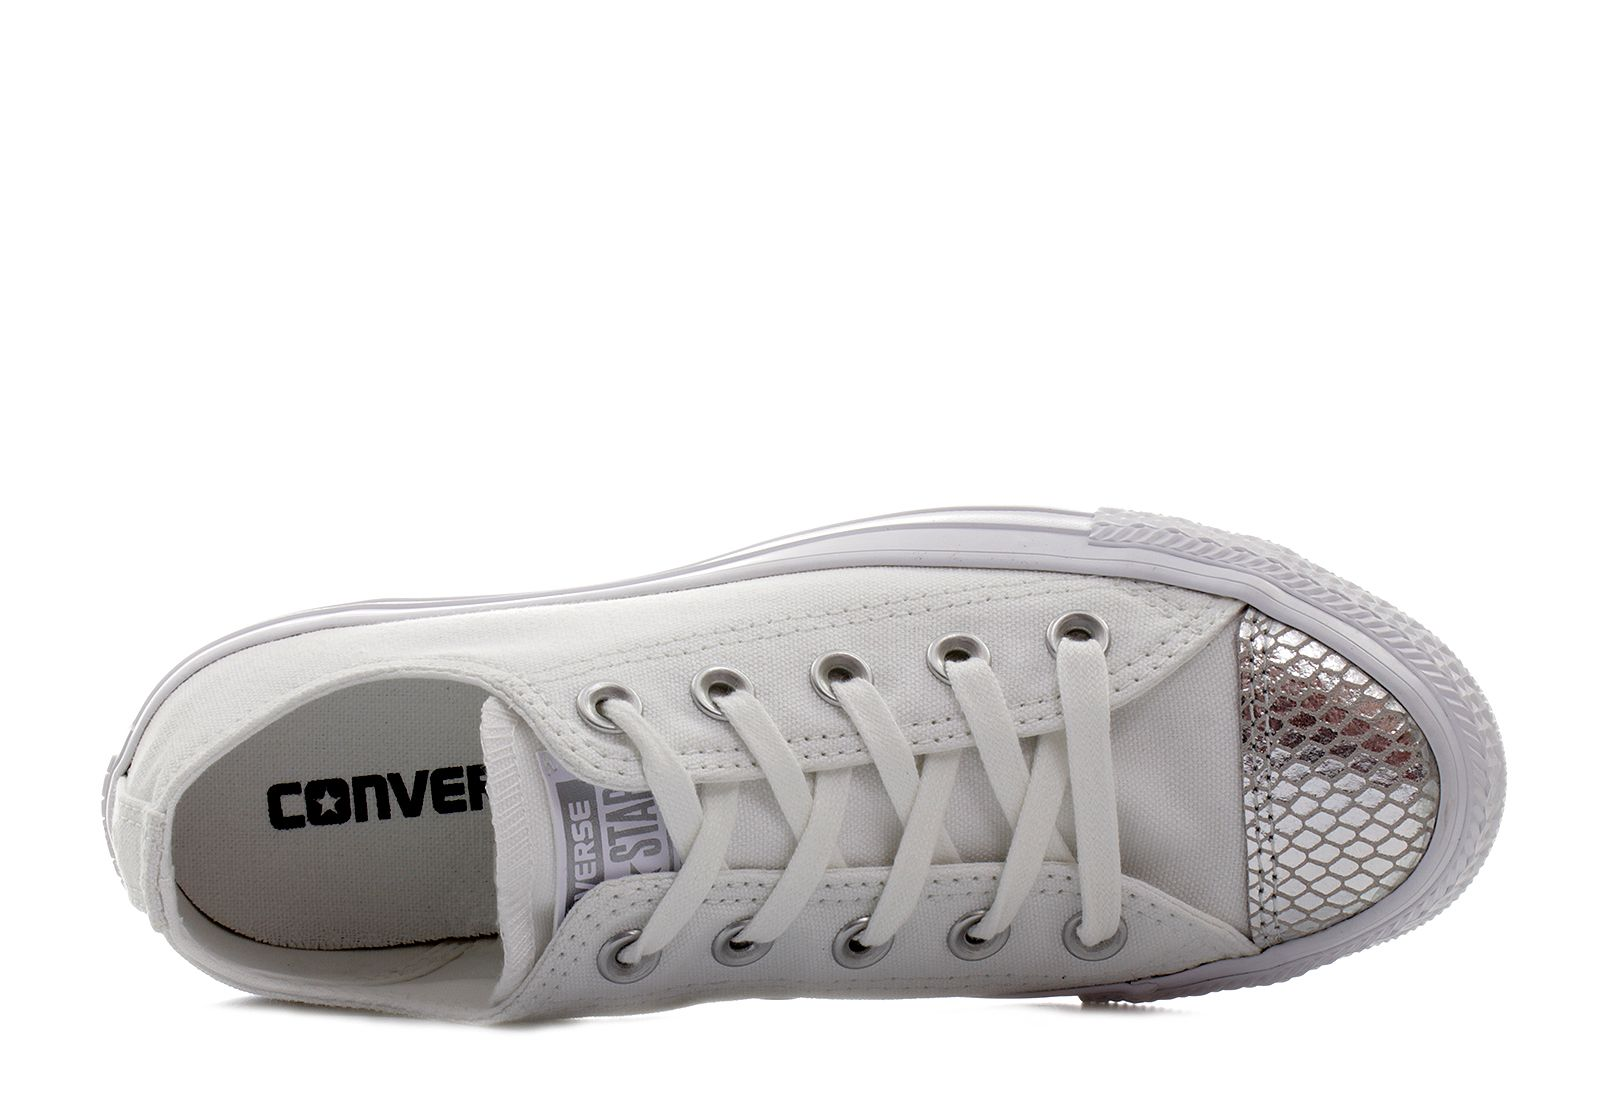 Converse Sneakers - Chuck Taylor All Star Specialty Ox - 555816C ... 064705b7e071